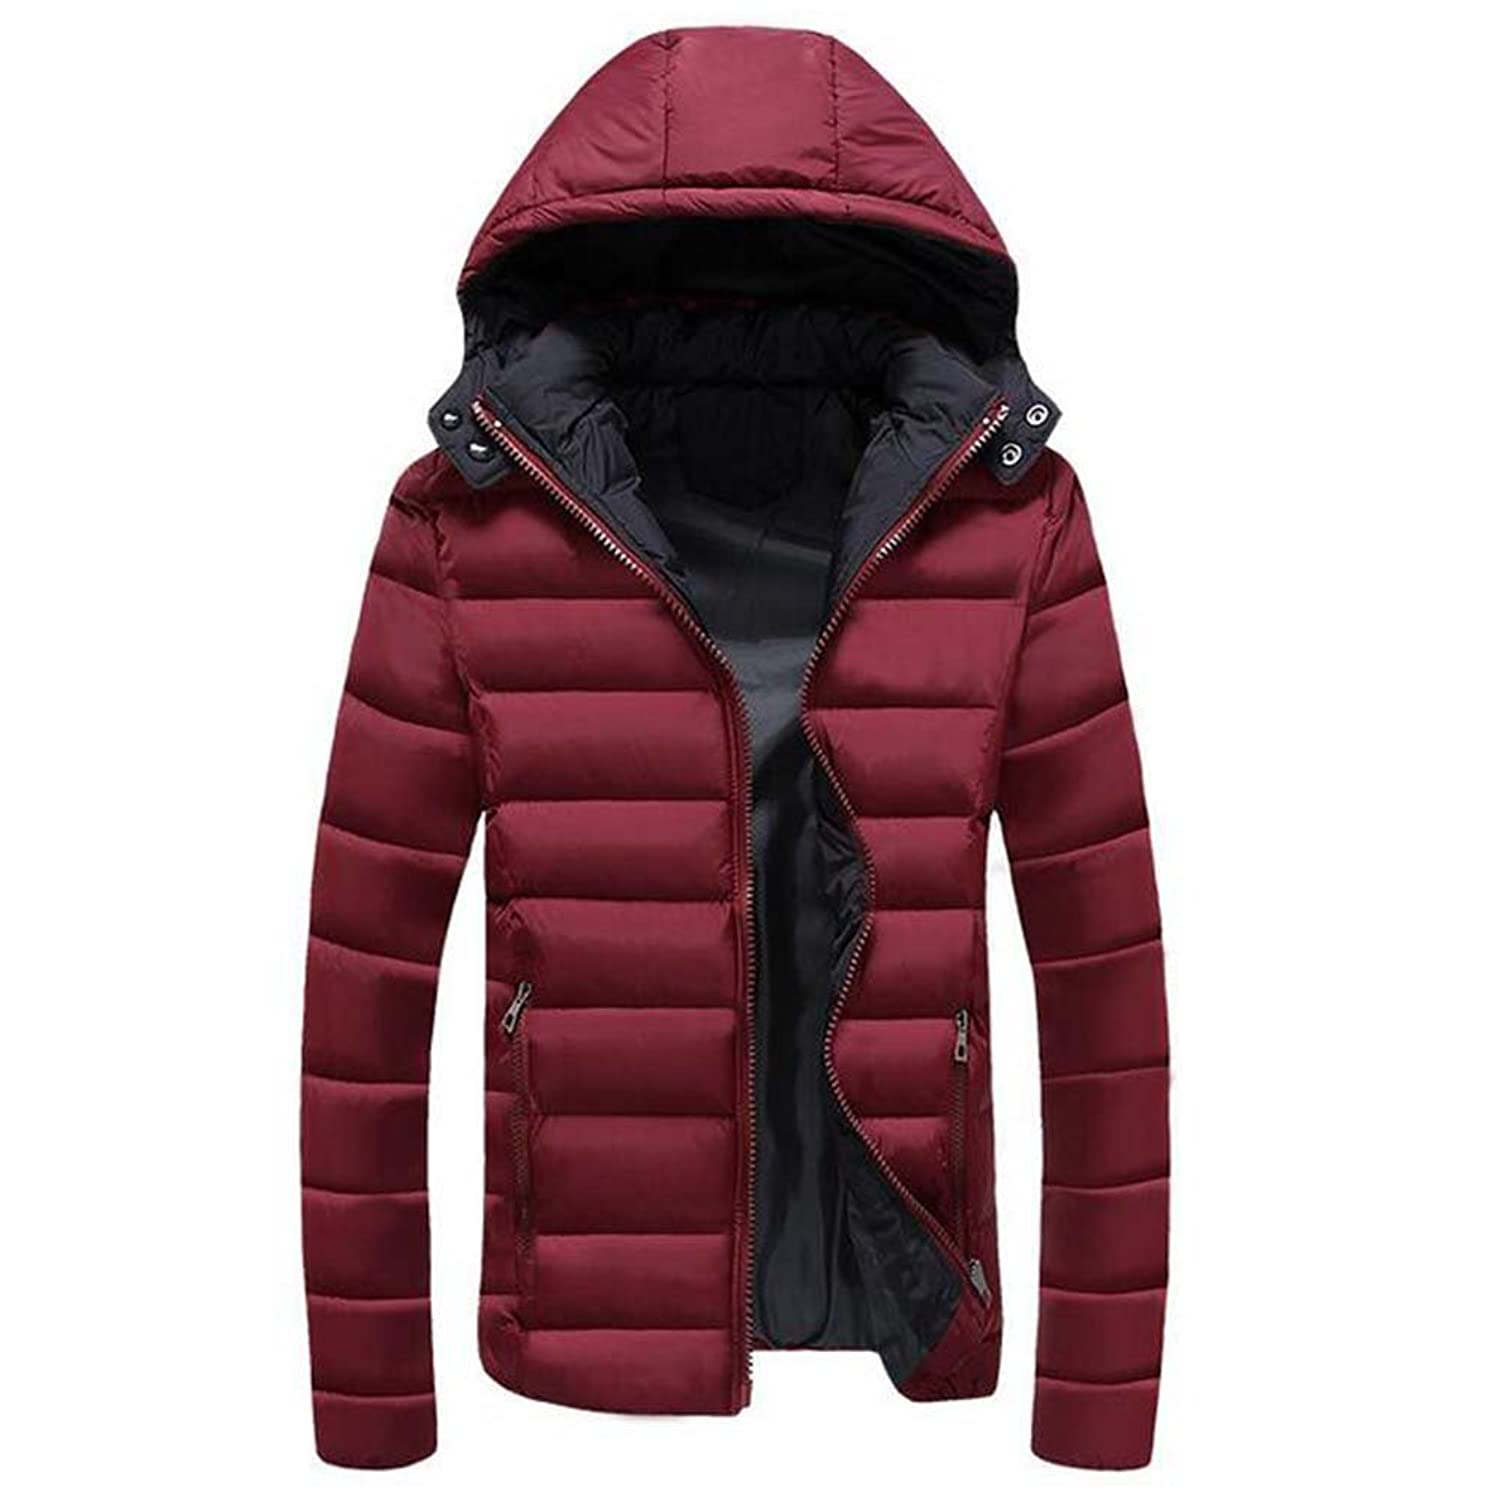 hibote Man Jacket Classical Warm Men Jacket Zipper Hat Detachable Coat Red 2XL